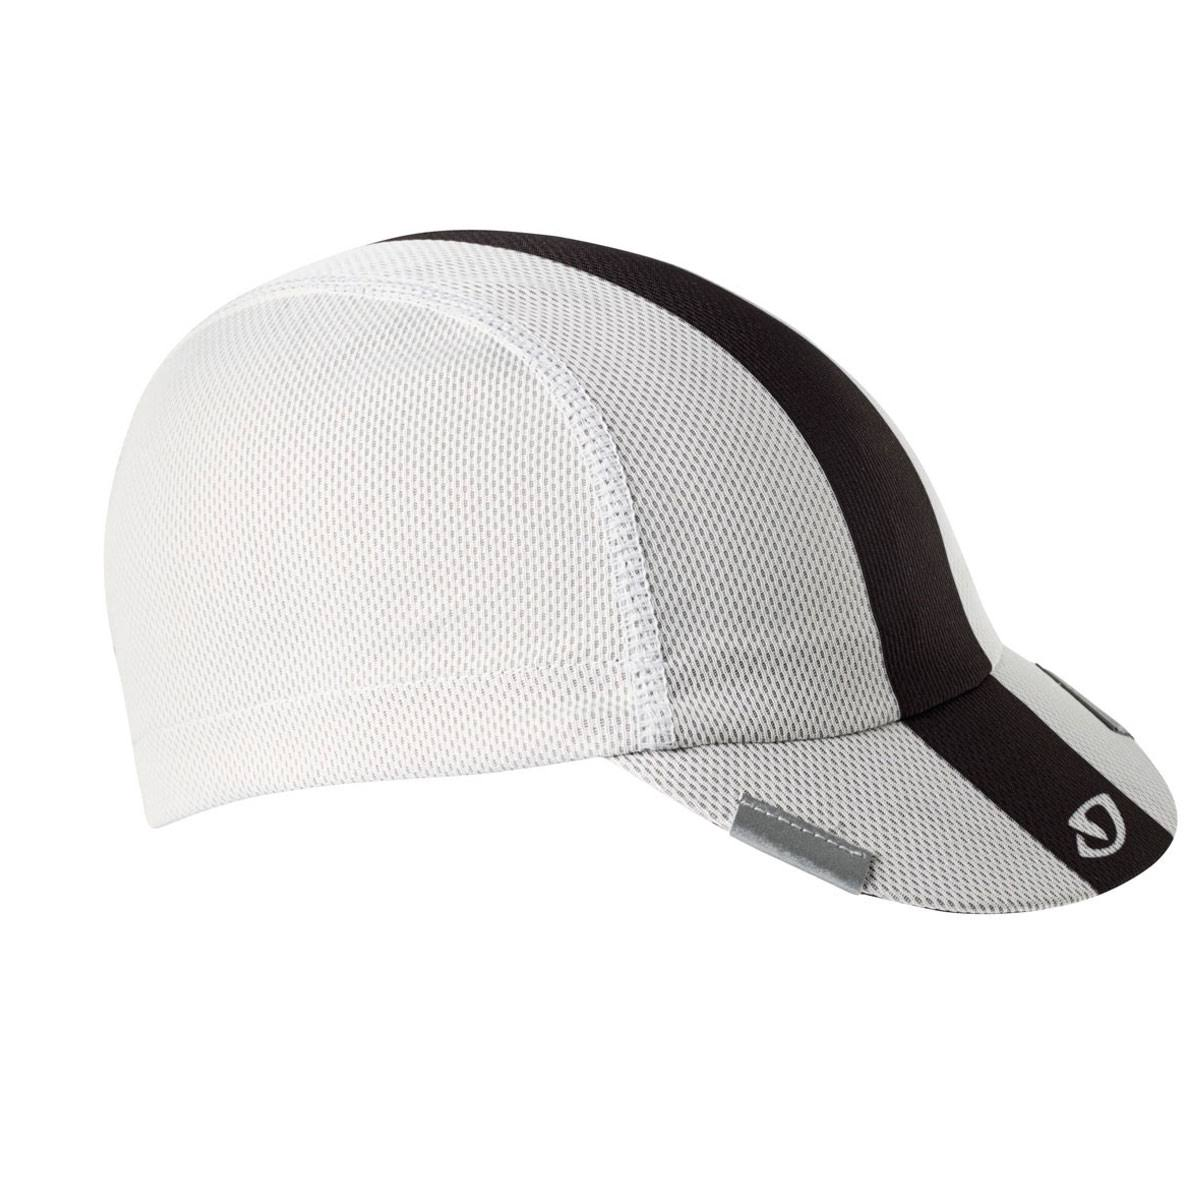 Giro Peloton Cycling Cap - White, Black and Grey